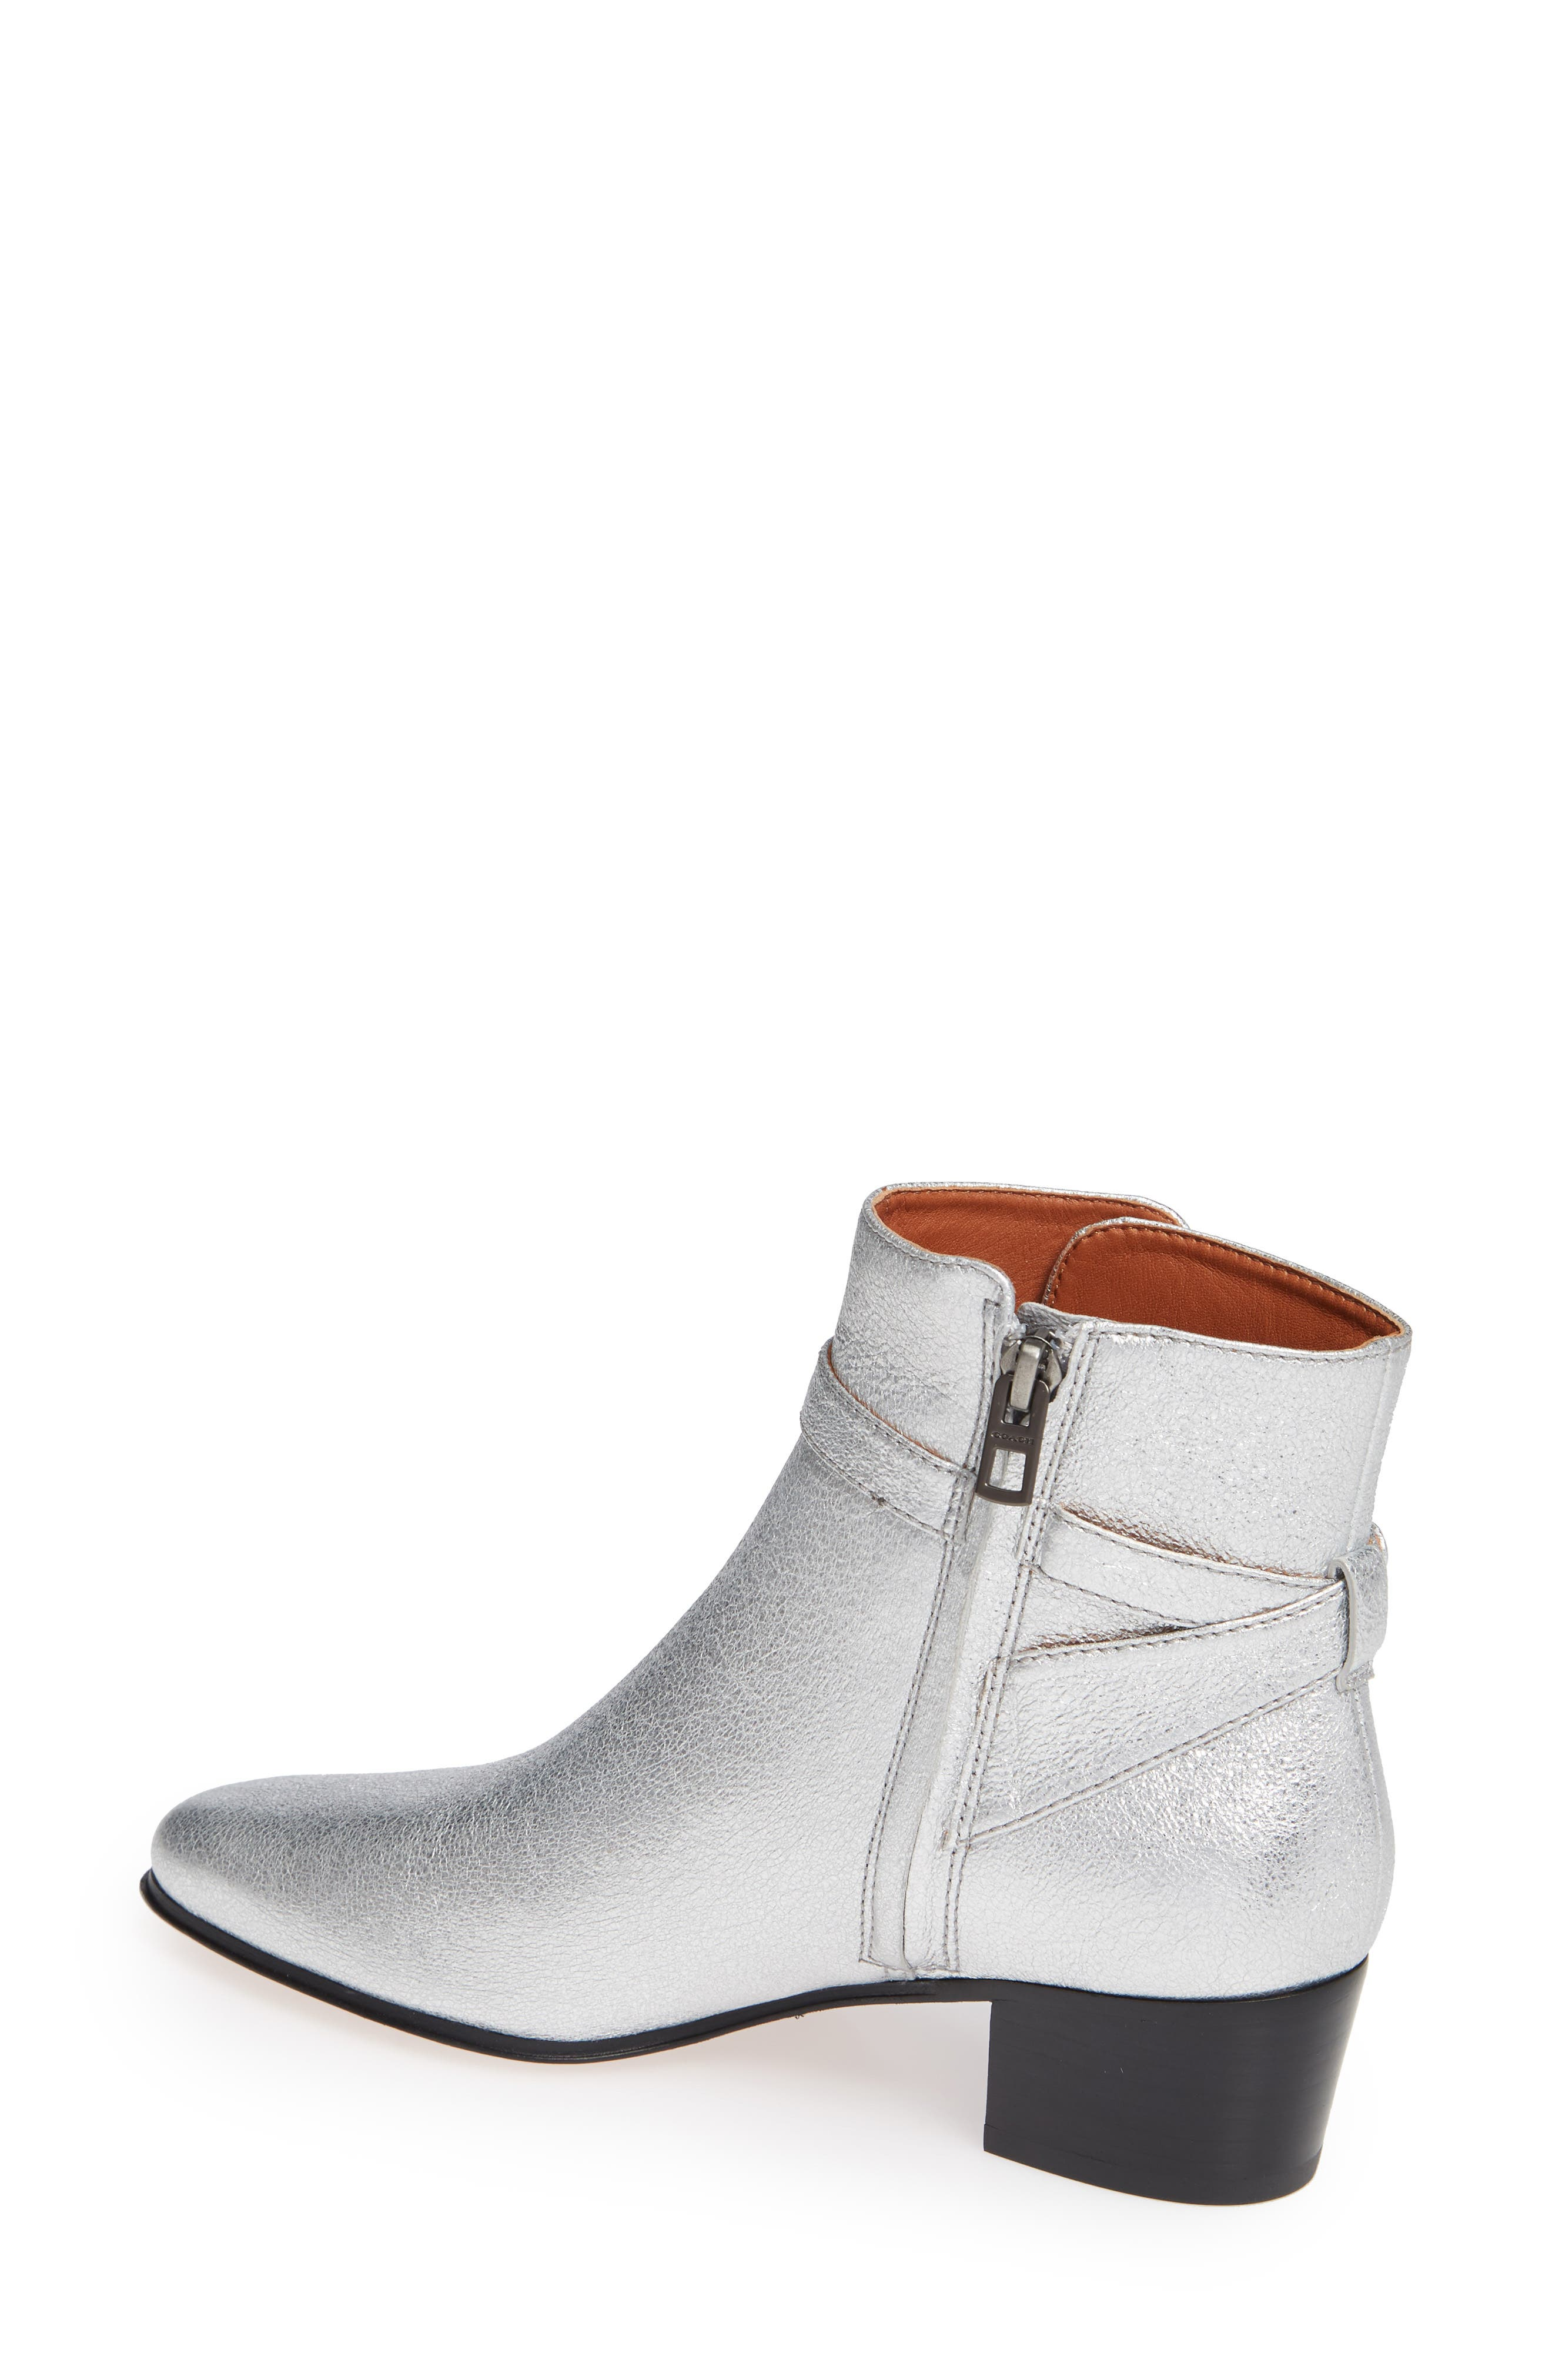 Chrystie Bootie,                             Alternate thumbnail 2, color,                             SILVER LEATHER